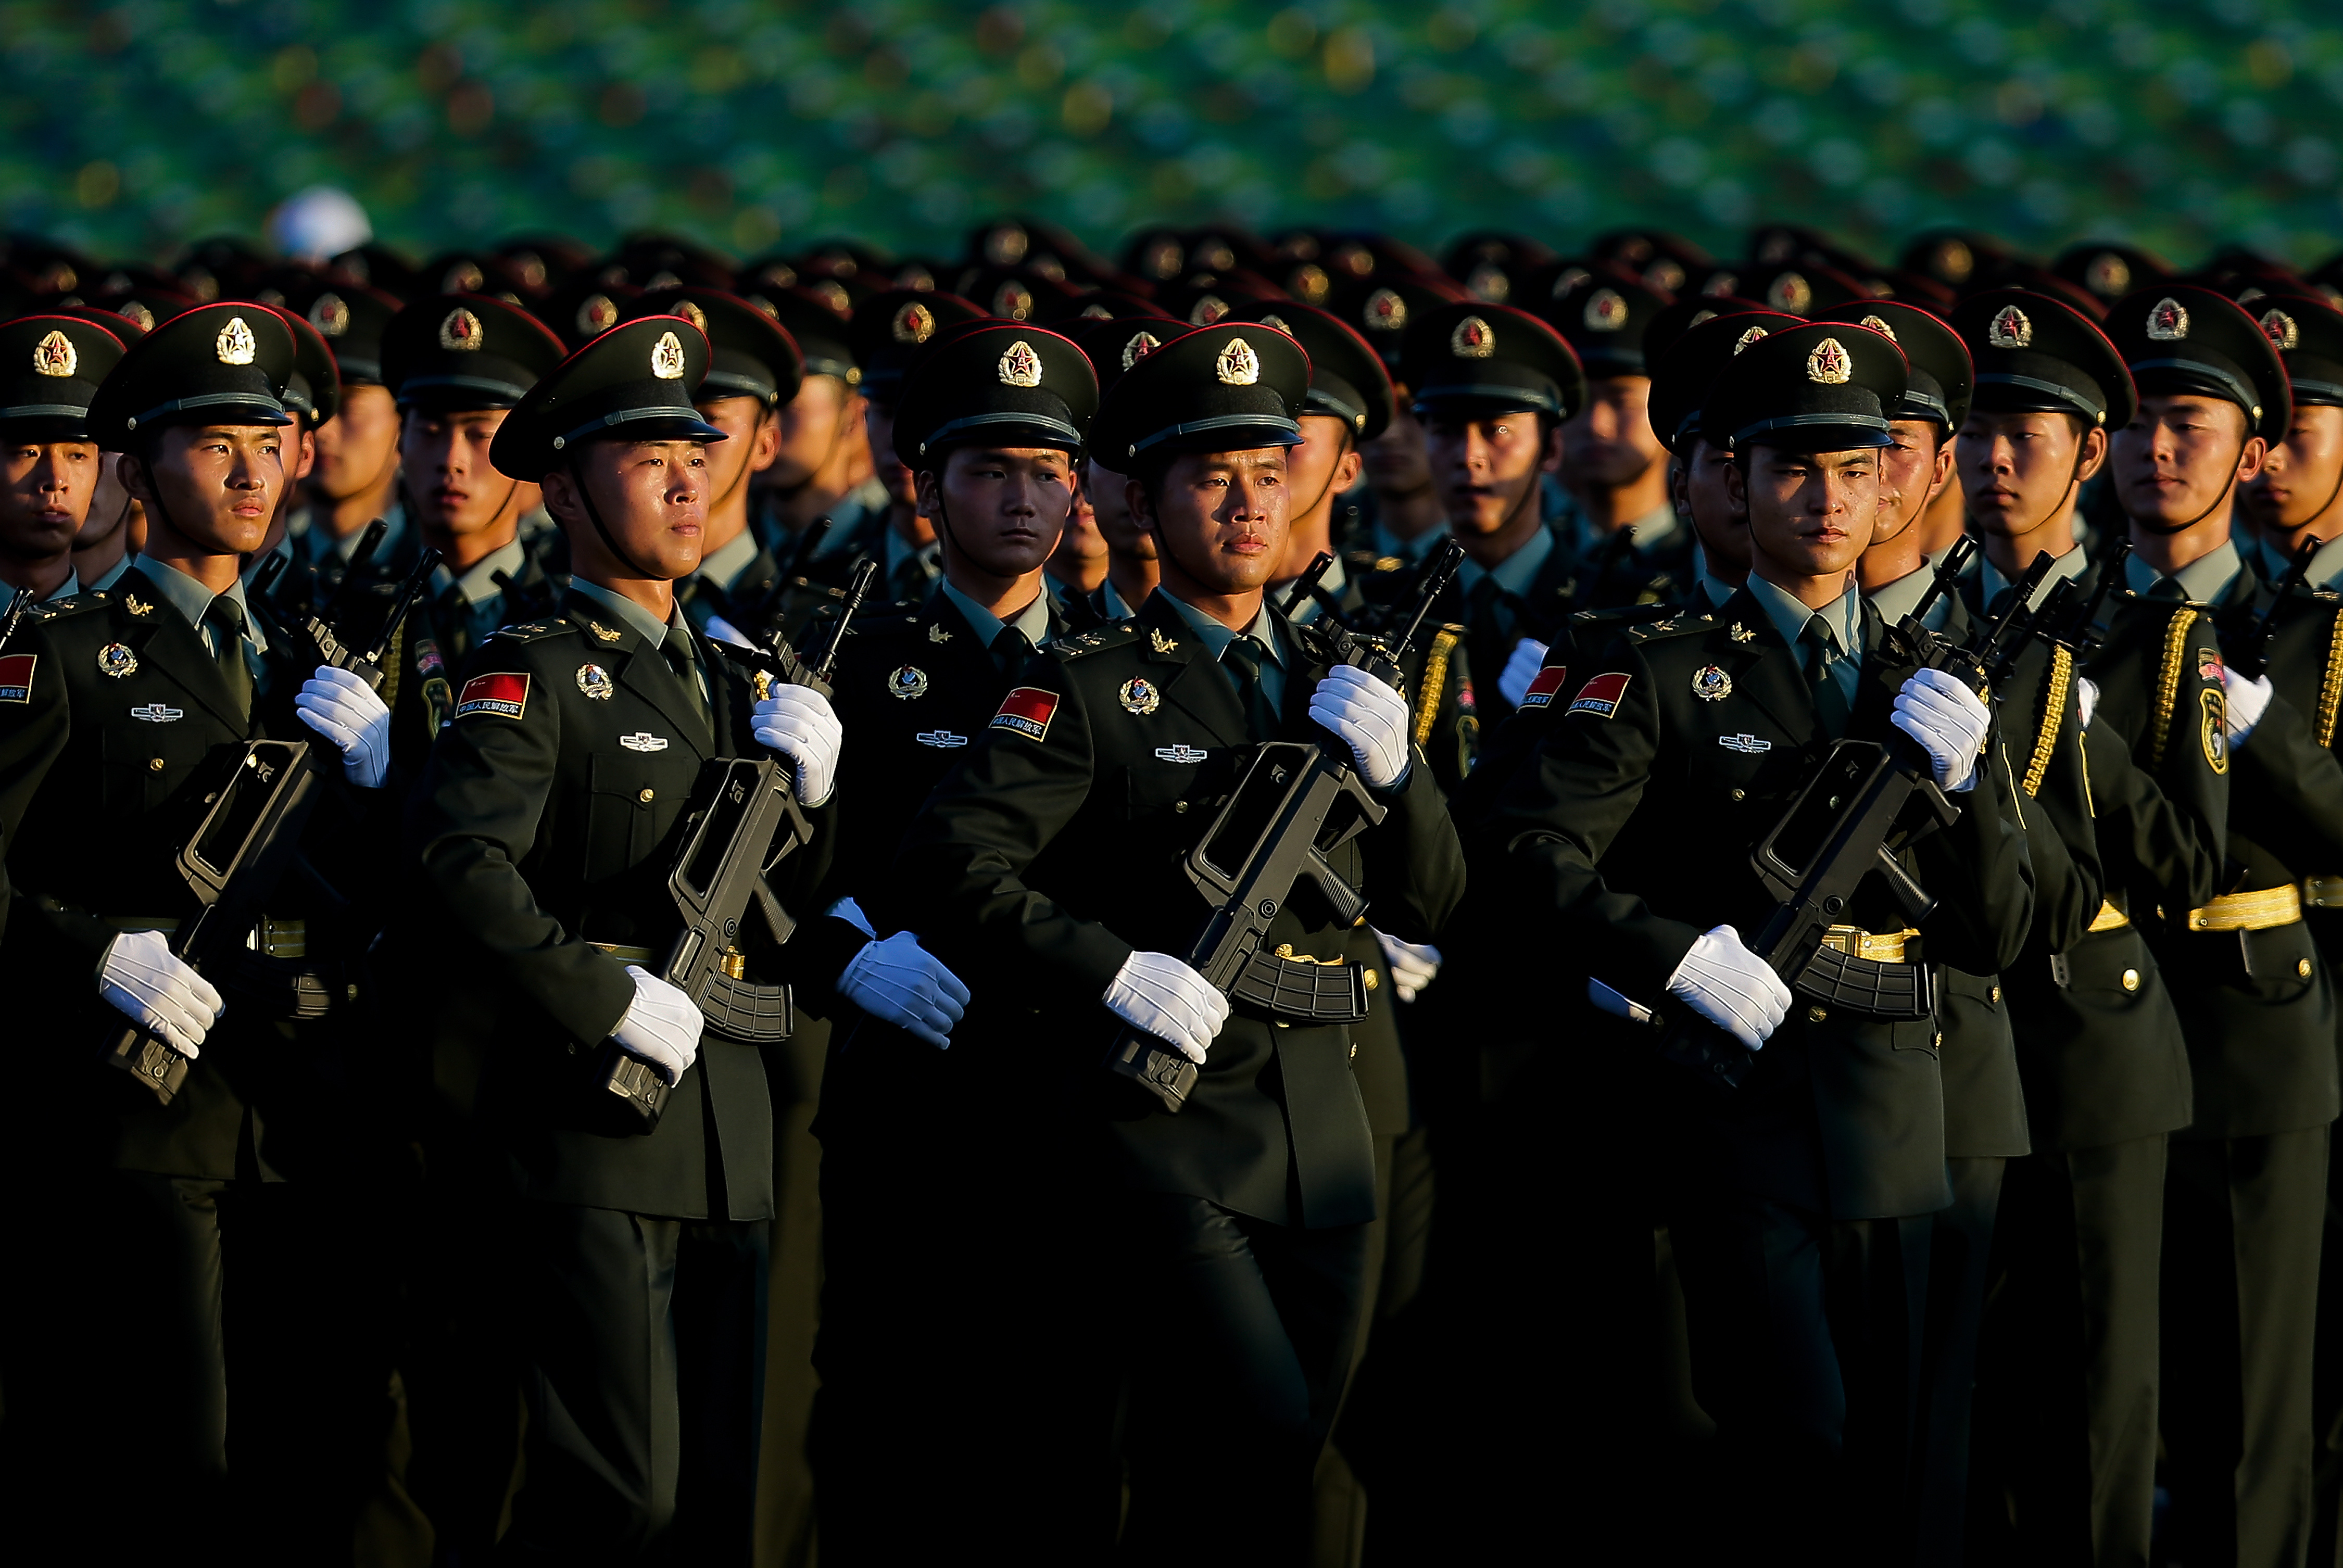 While Rest of EU Stays Home, Czech President to Attend Grandiose Beijing Military Parade